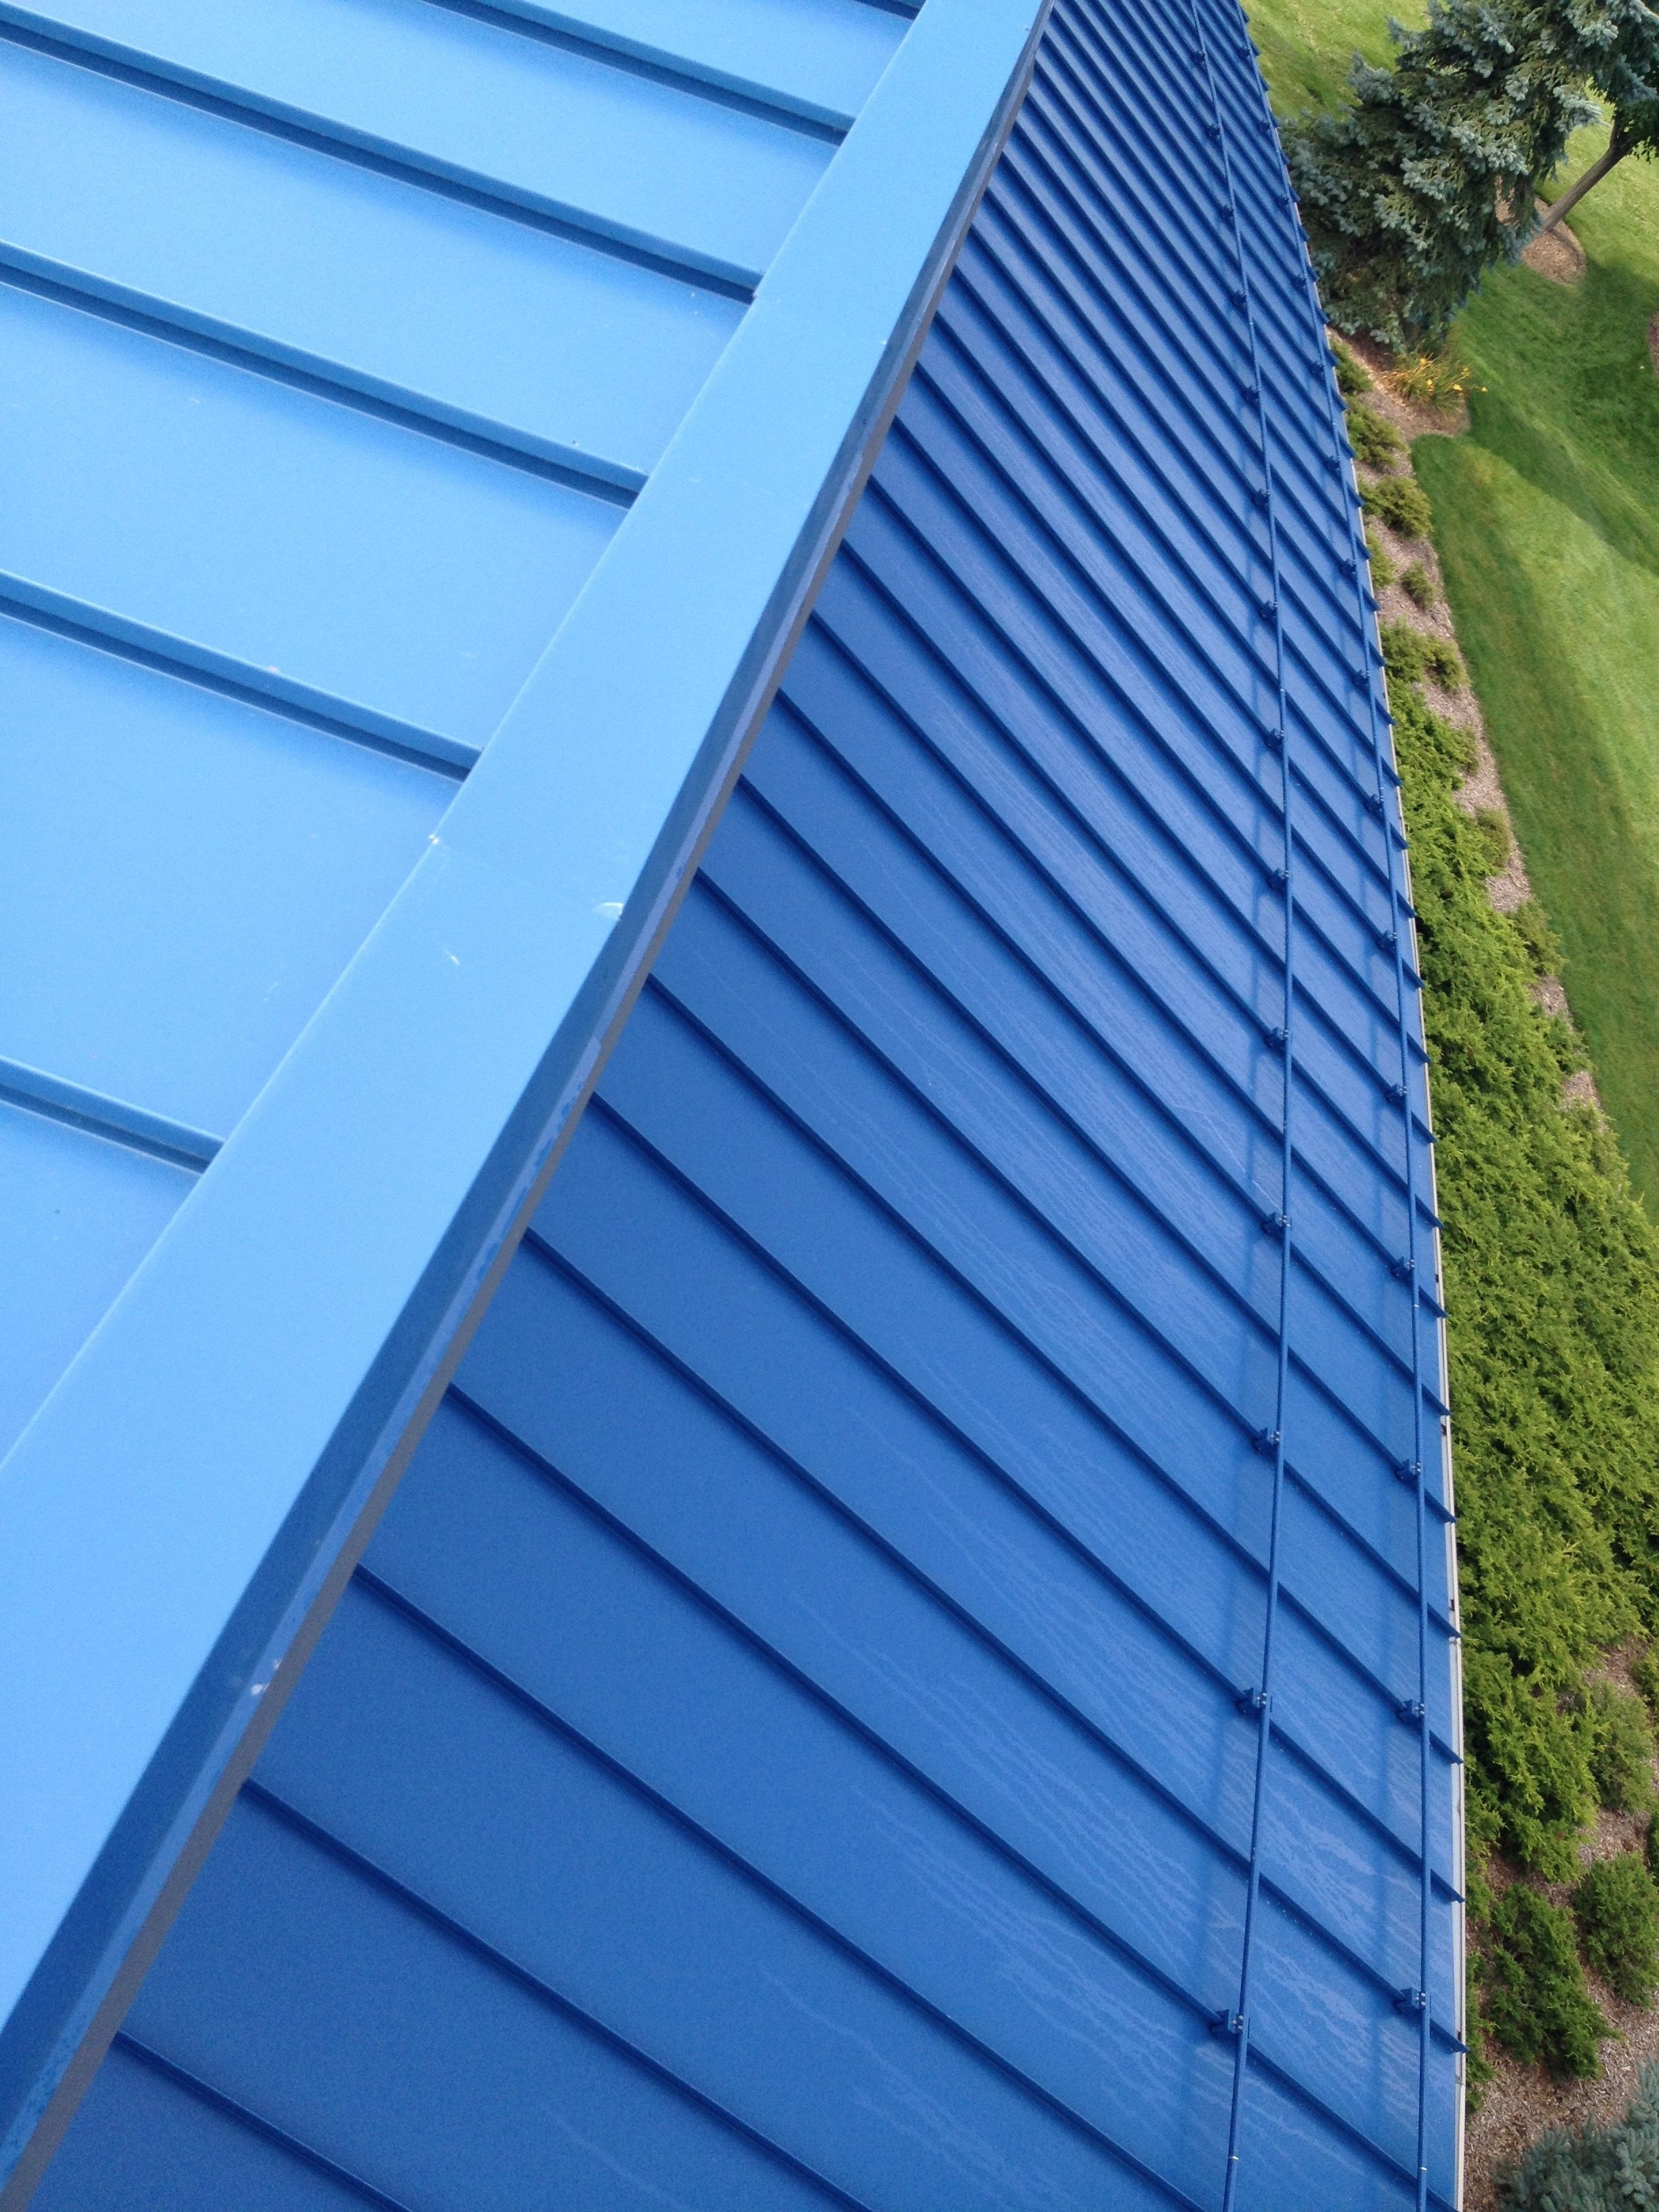 Berridge High Seam Tee Panel Standing Seam Metal Roofing Provides A High Narrow Standing Seam 1 Or 1 1 2 Tall Standing Seam Metal Roofing Systems Metal Roof